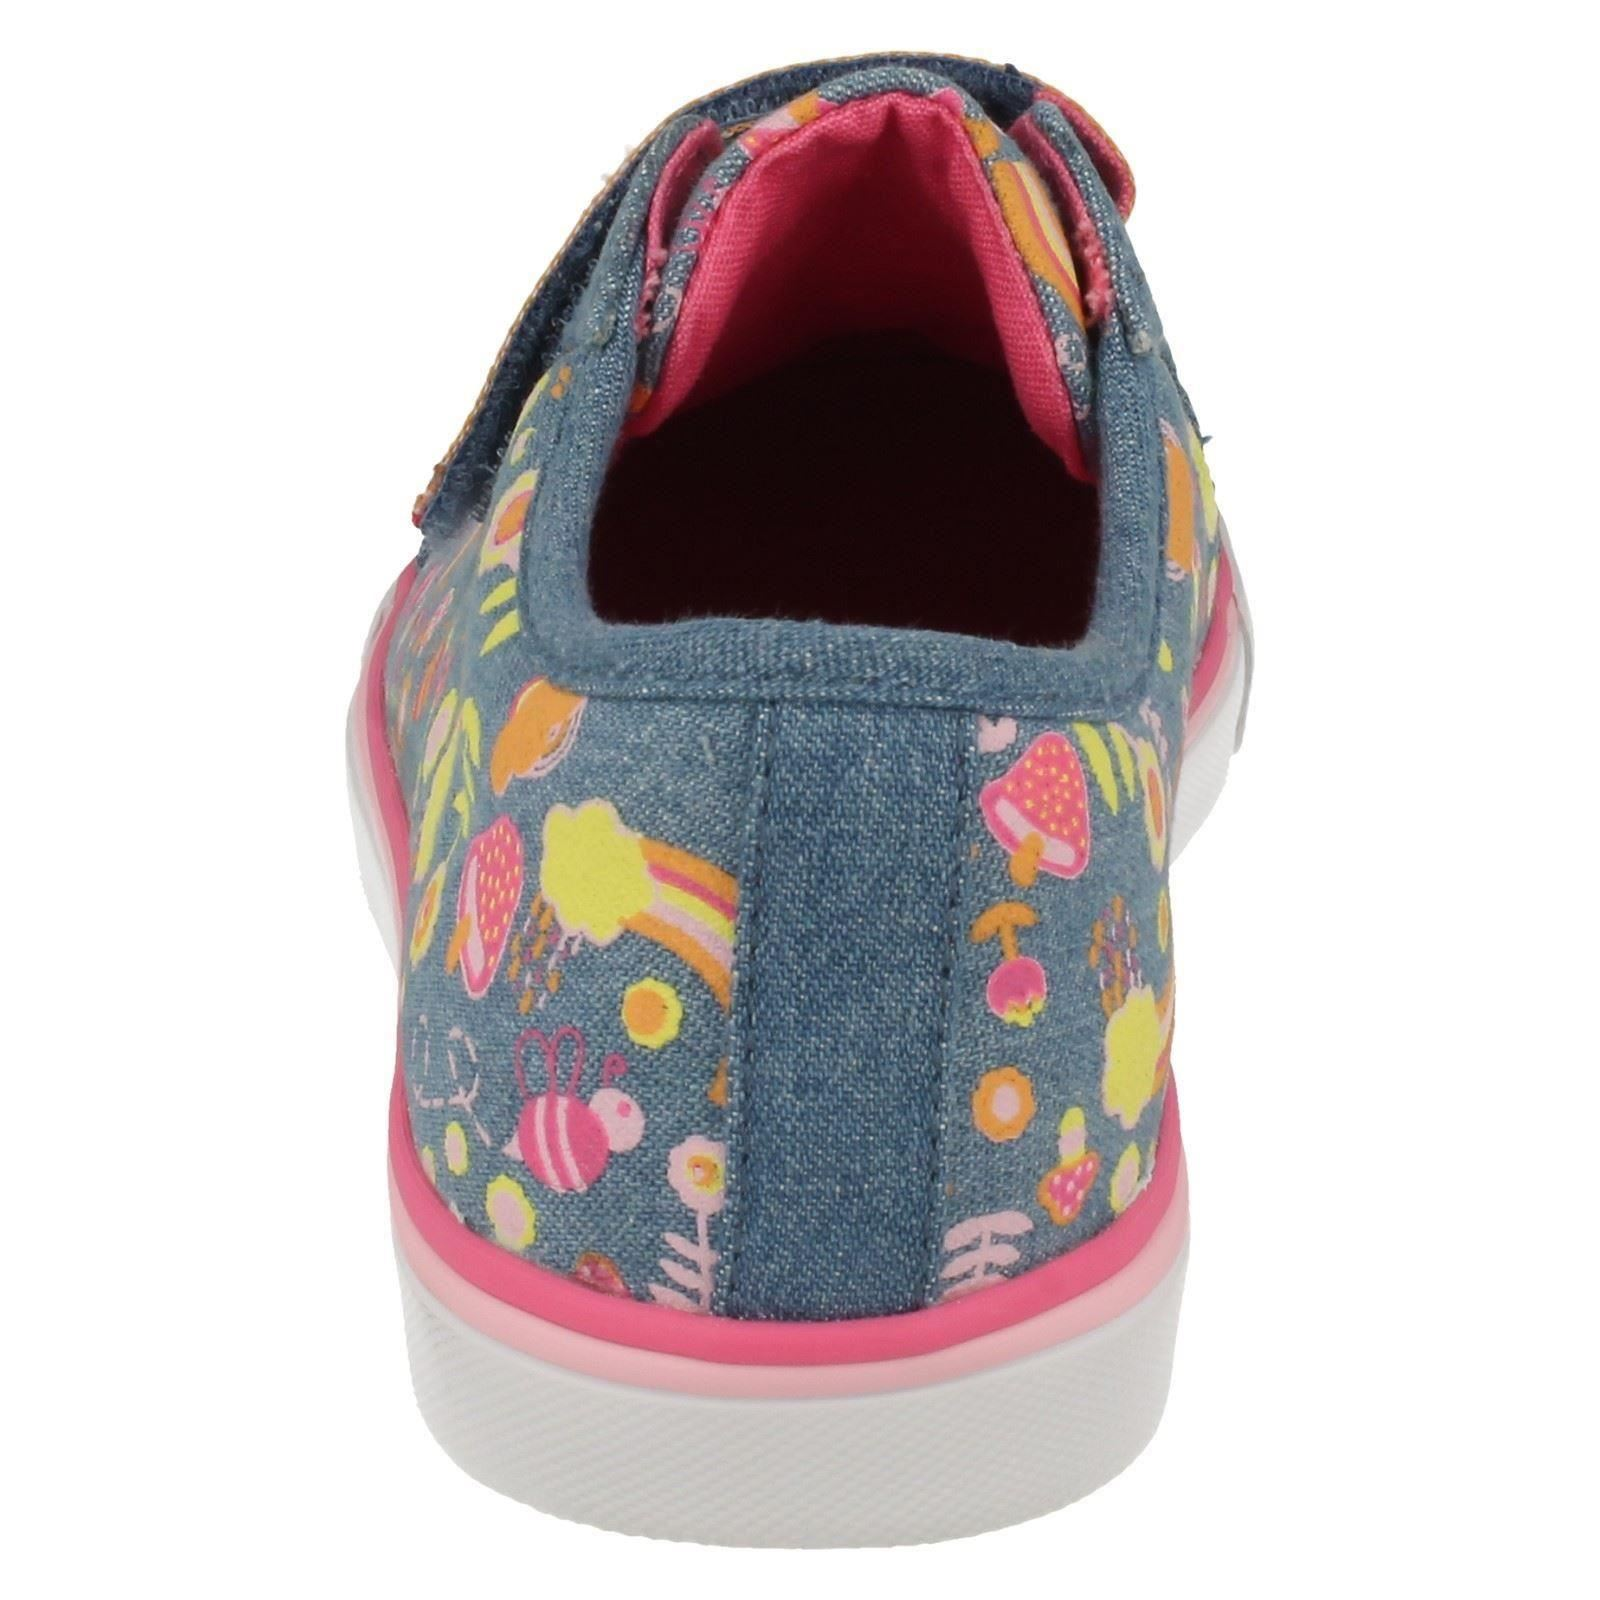 Girls Clarks Canvas Shoes Brill Doll